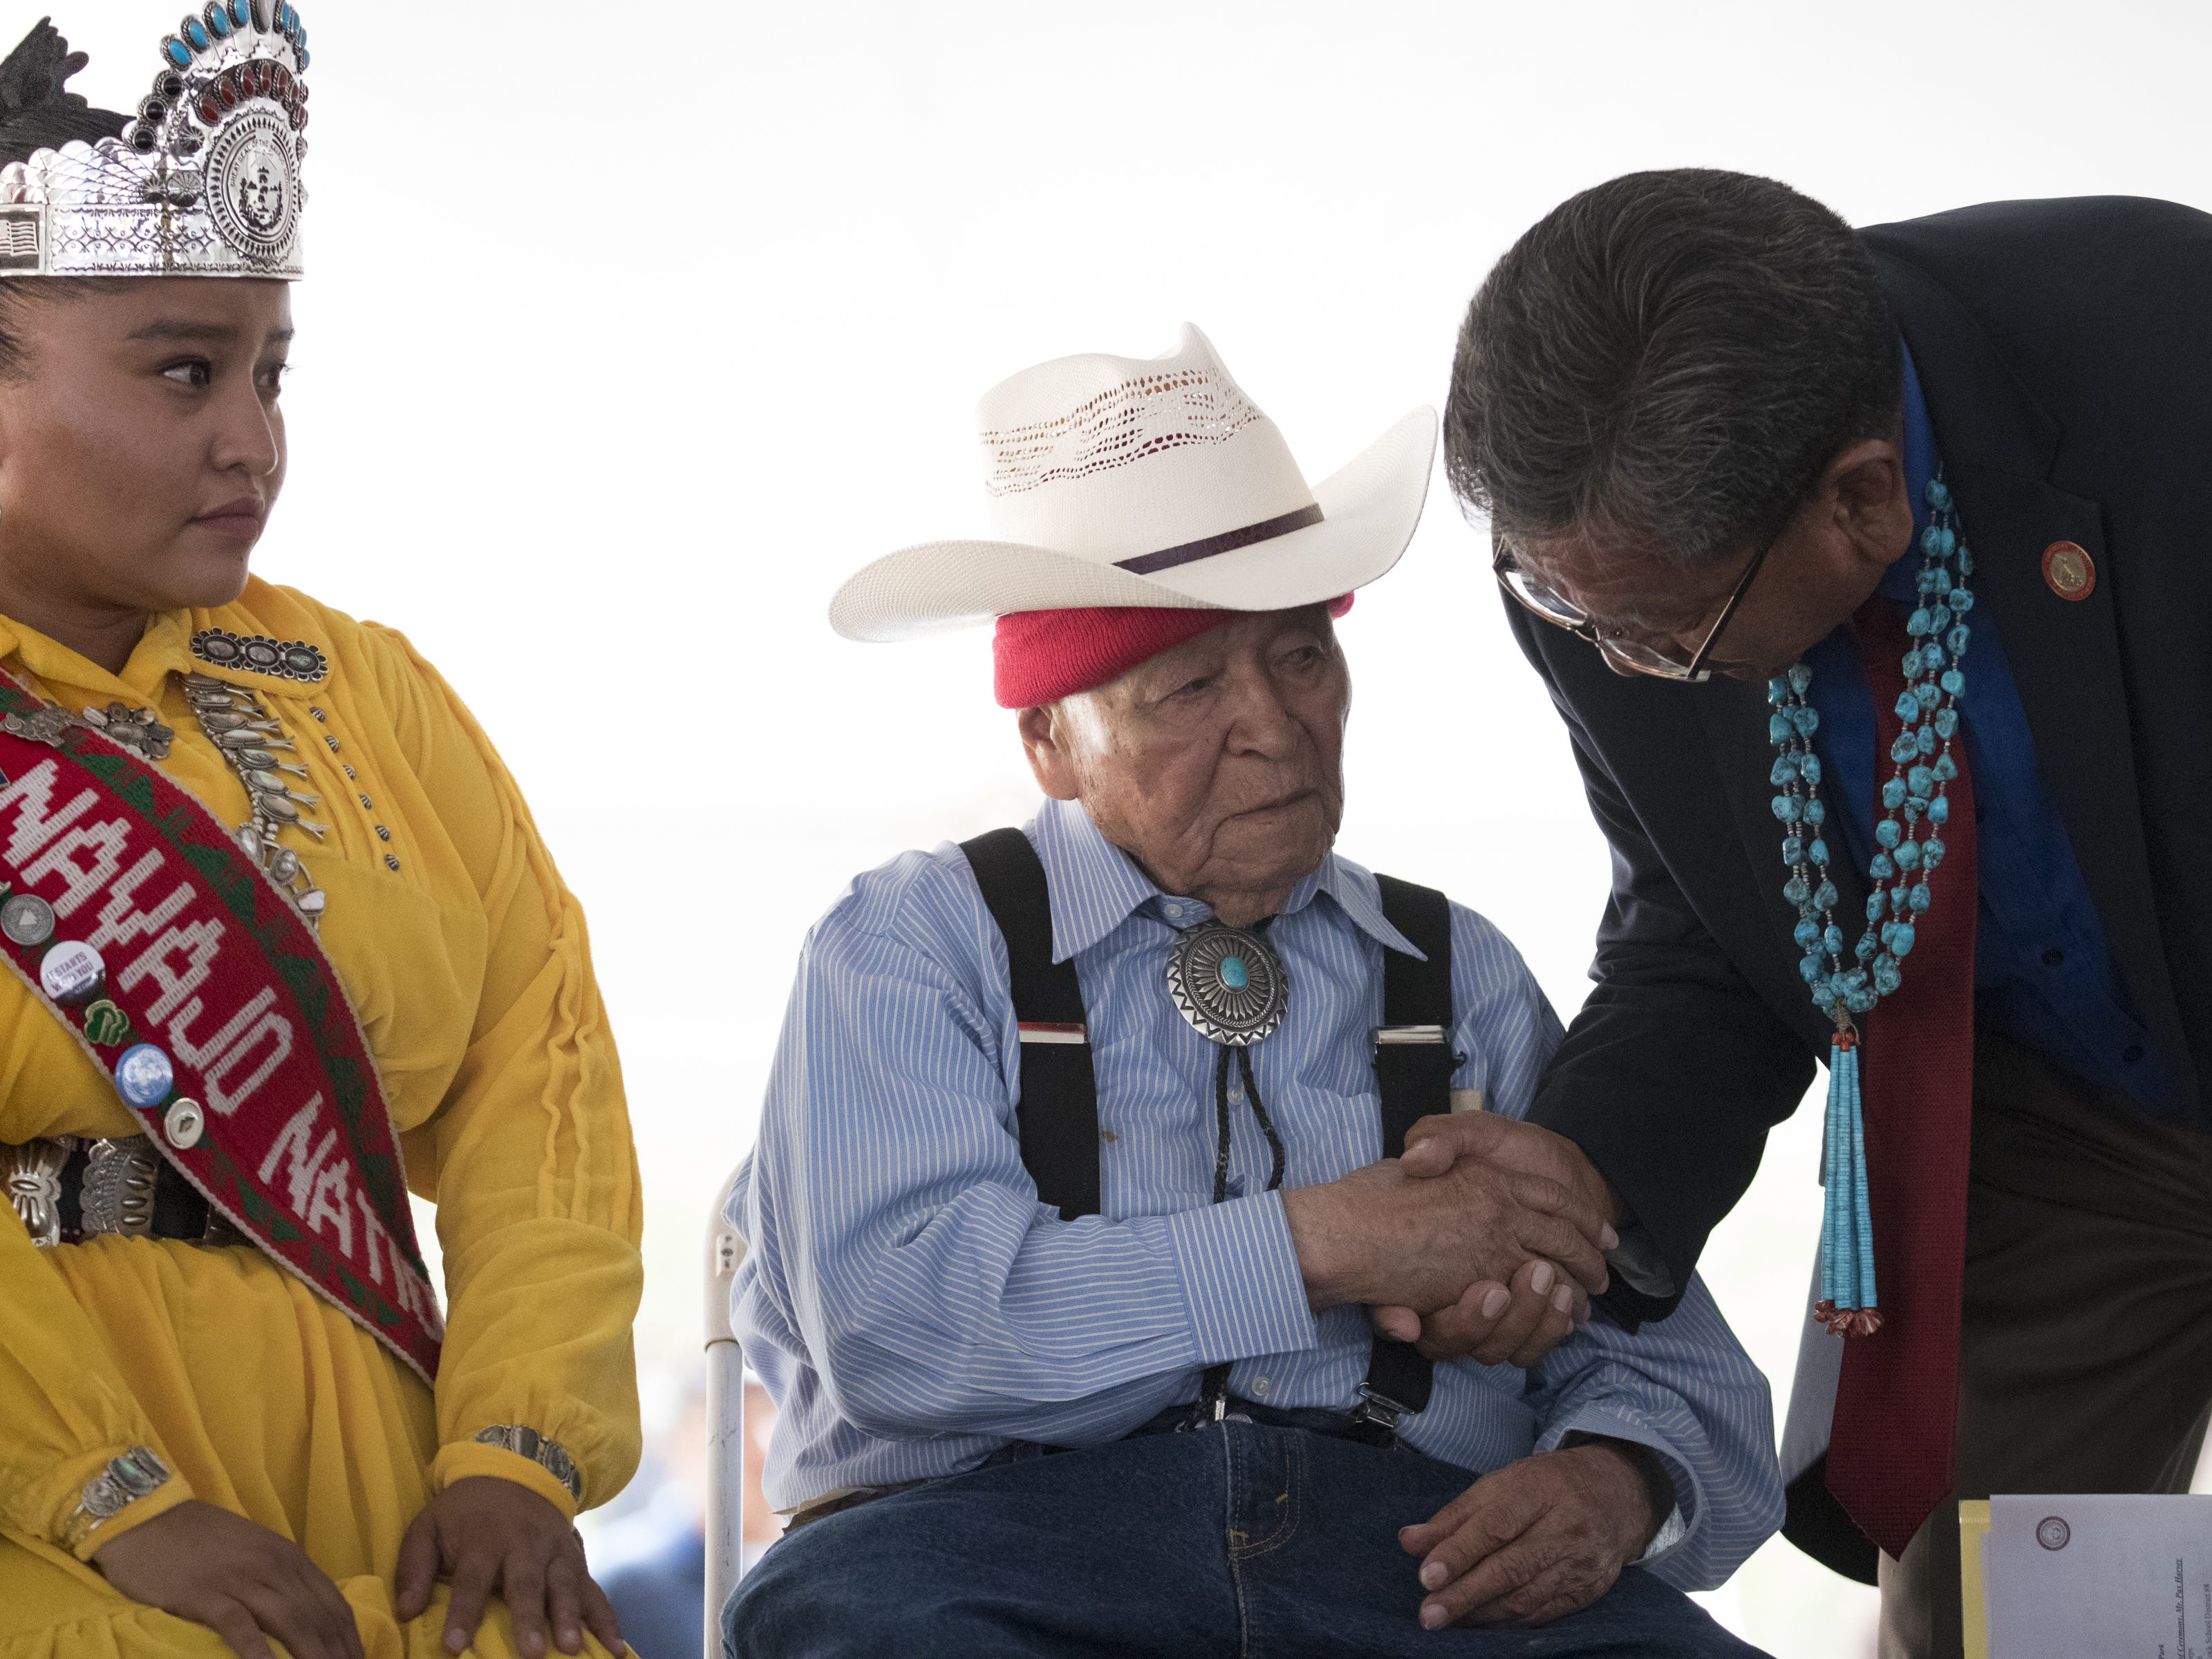 Navajo Code Talker John Pinto (center) talks with Navajo Nation President Russell Begaye (right) during the Navajo Nation Code Talkers Day ceremony on Aug. 14, 2018, at the Veterans Memorial Park in Window Rock.